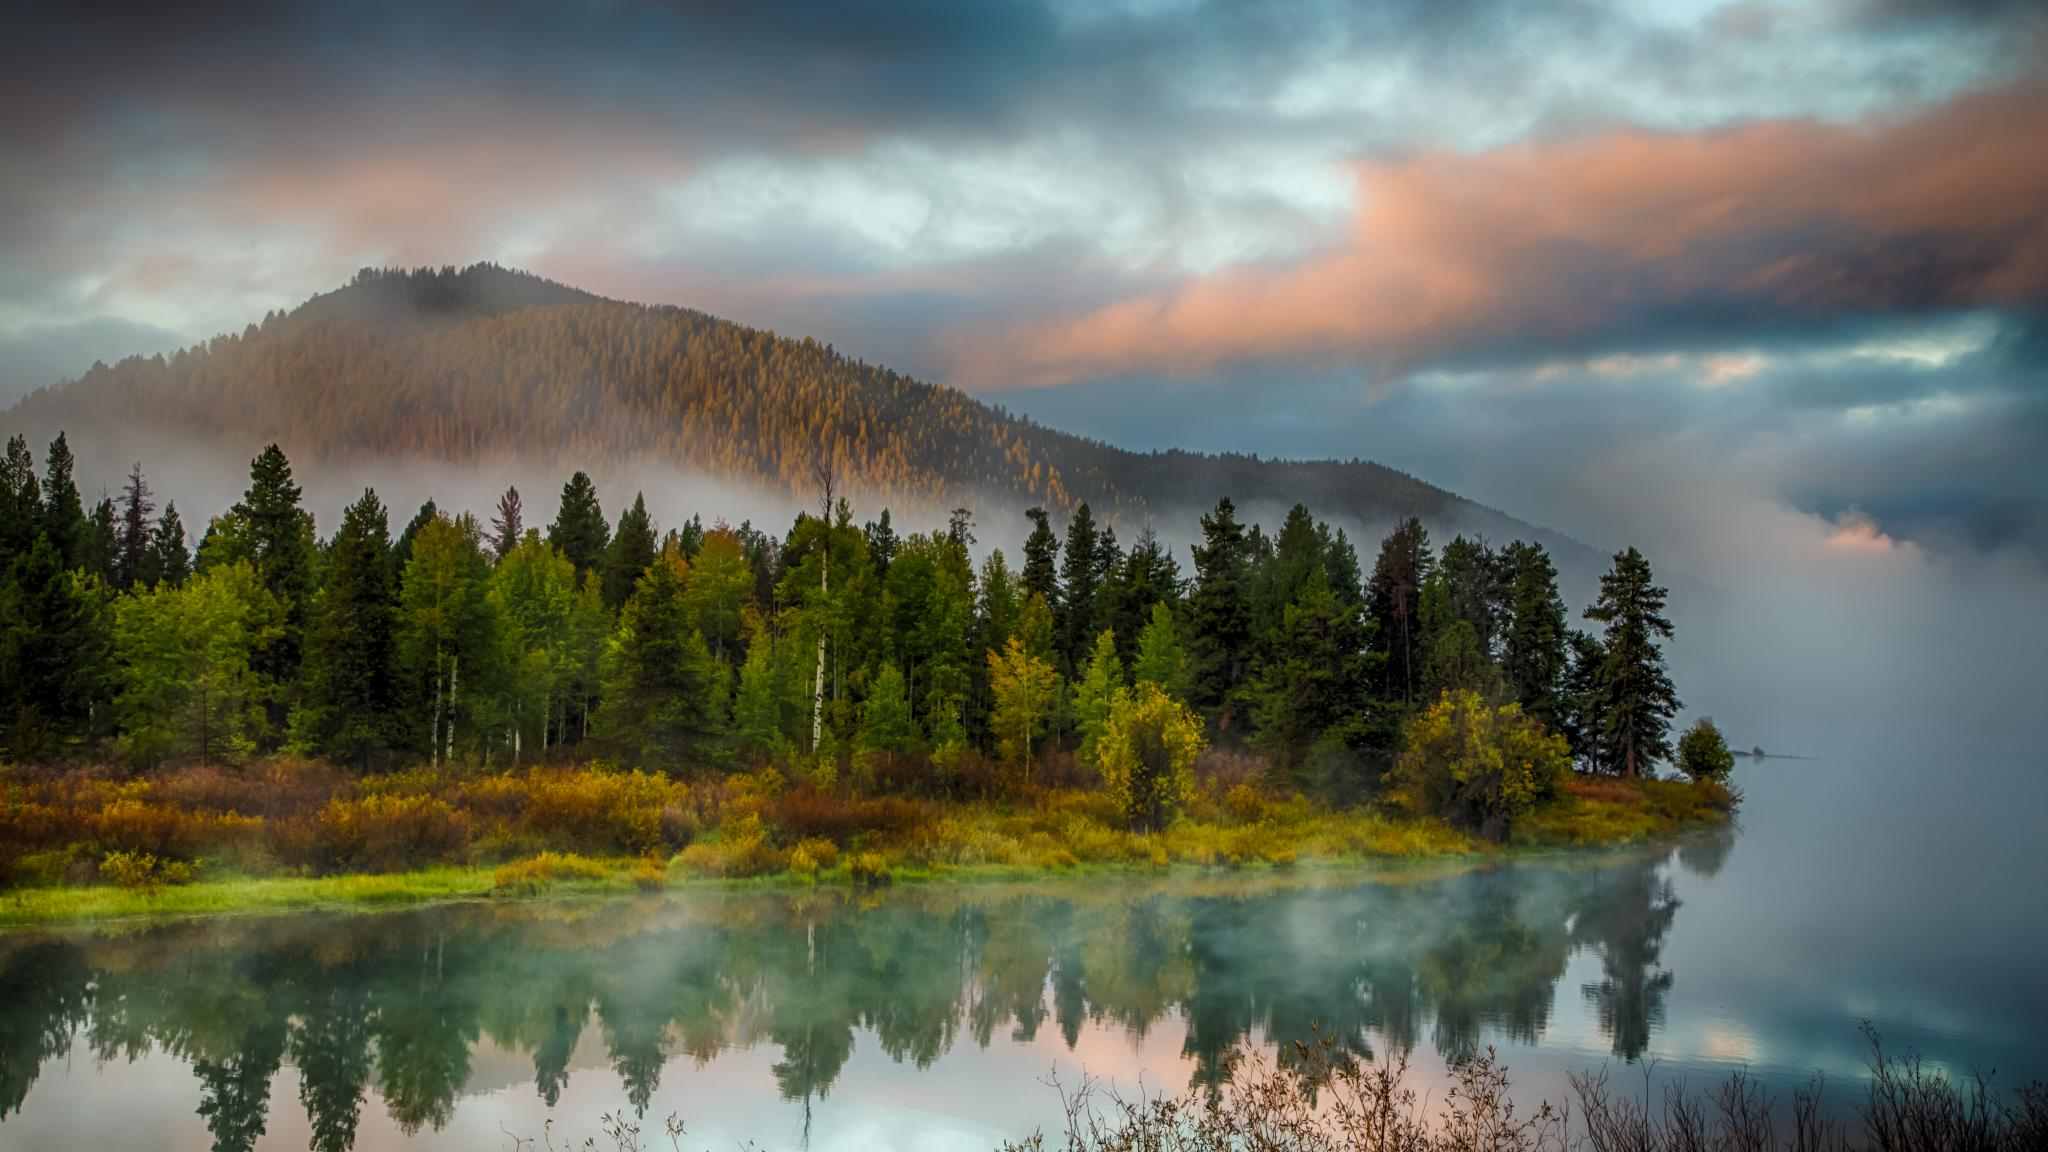 Early Fall Wallpaper Grand Teton National Park Wyoming United States Sunrise